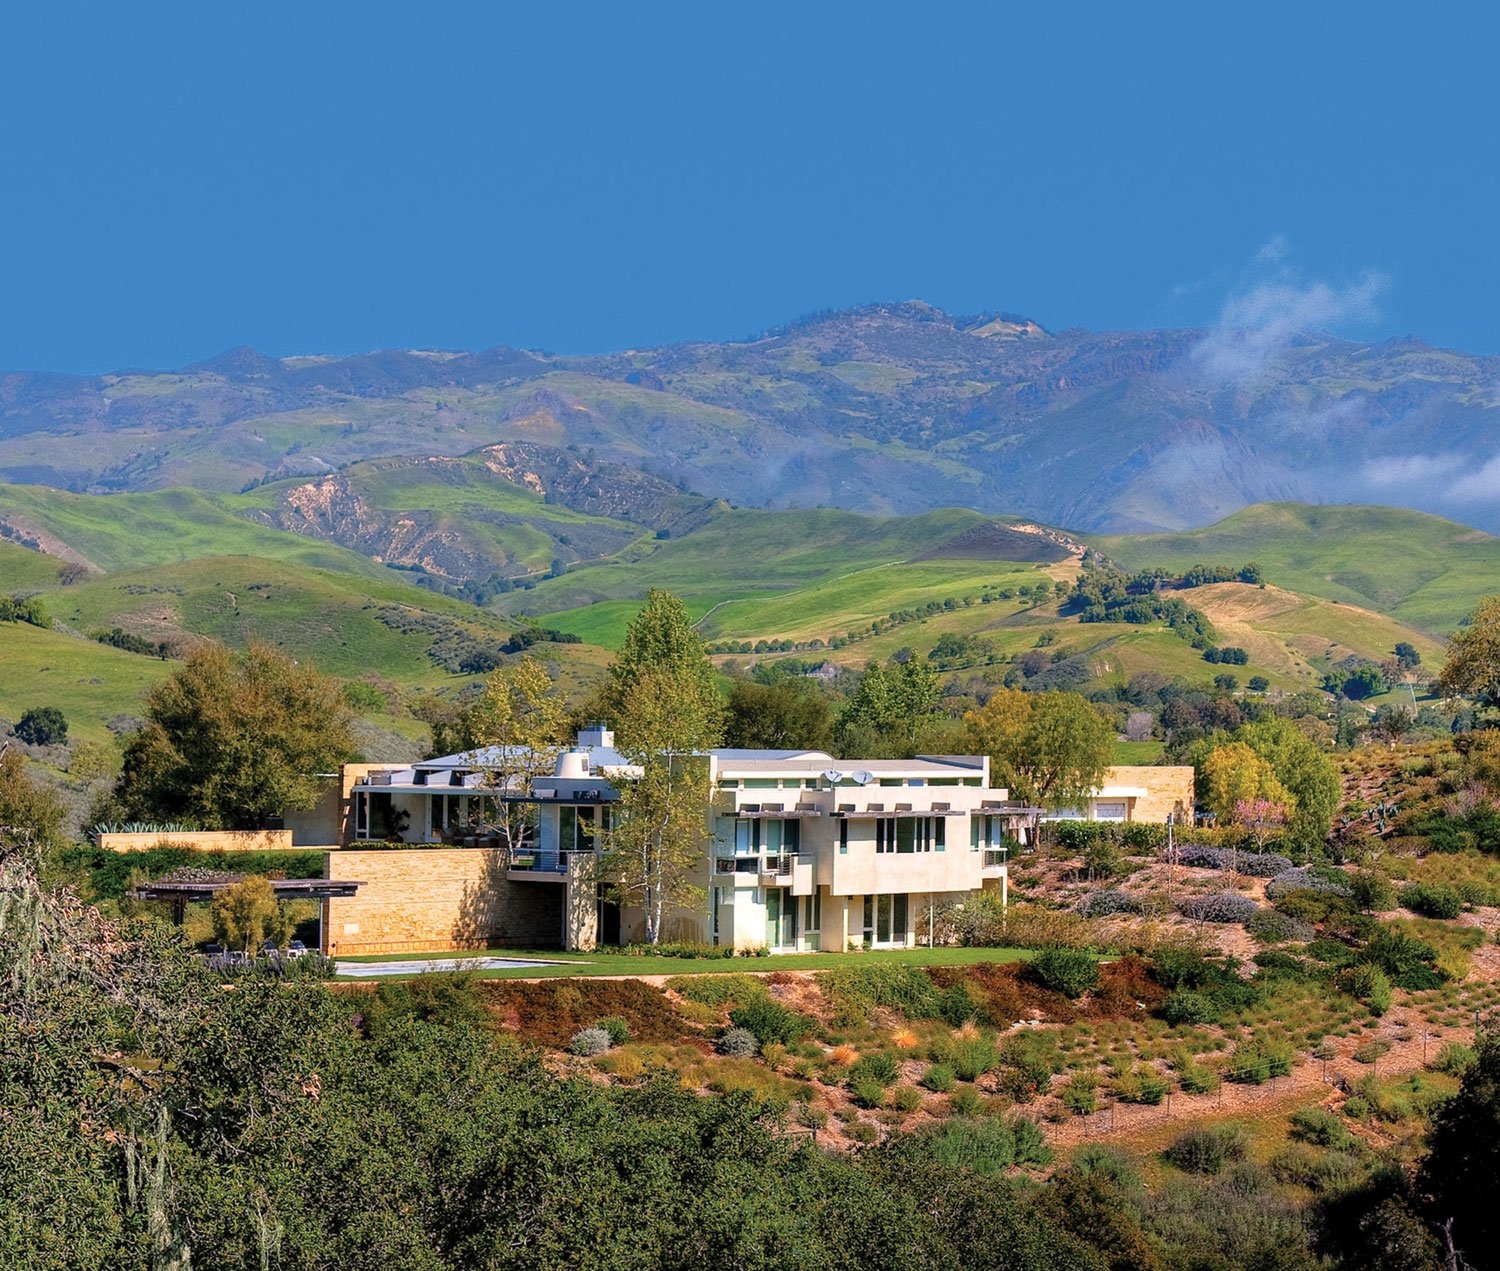 This architecturally significant modernist house and equestrian facility is set within 116 private acres of ranchland in the Santa Ynez Valley.